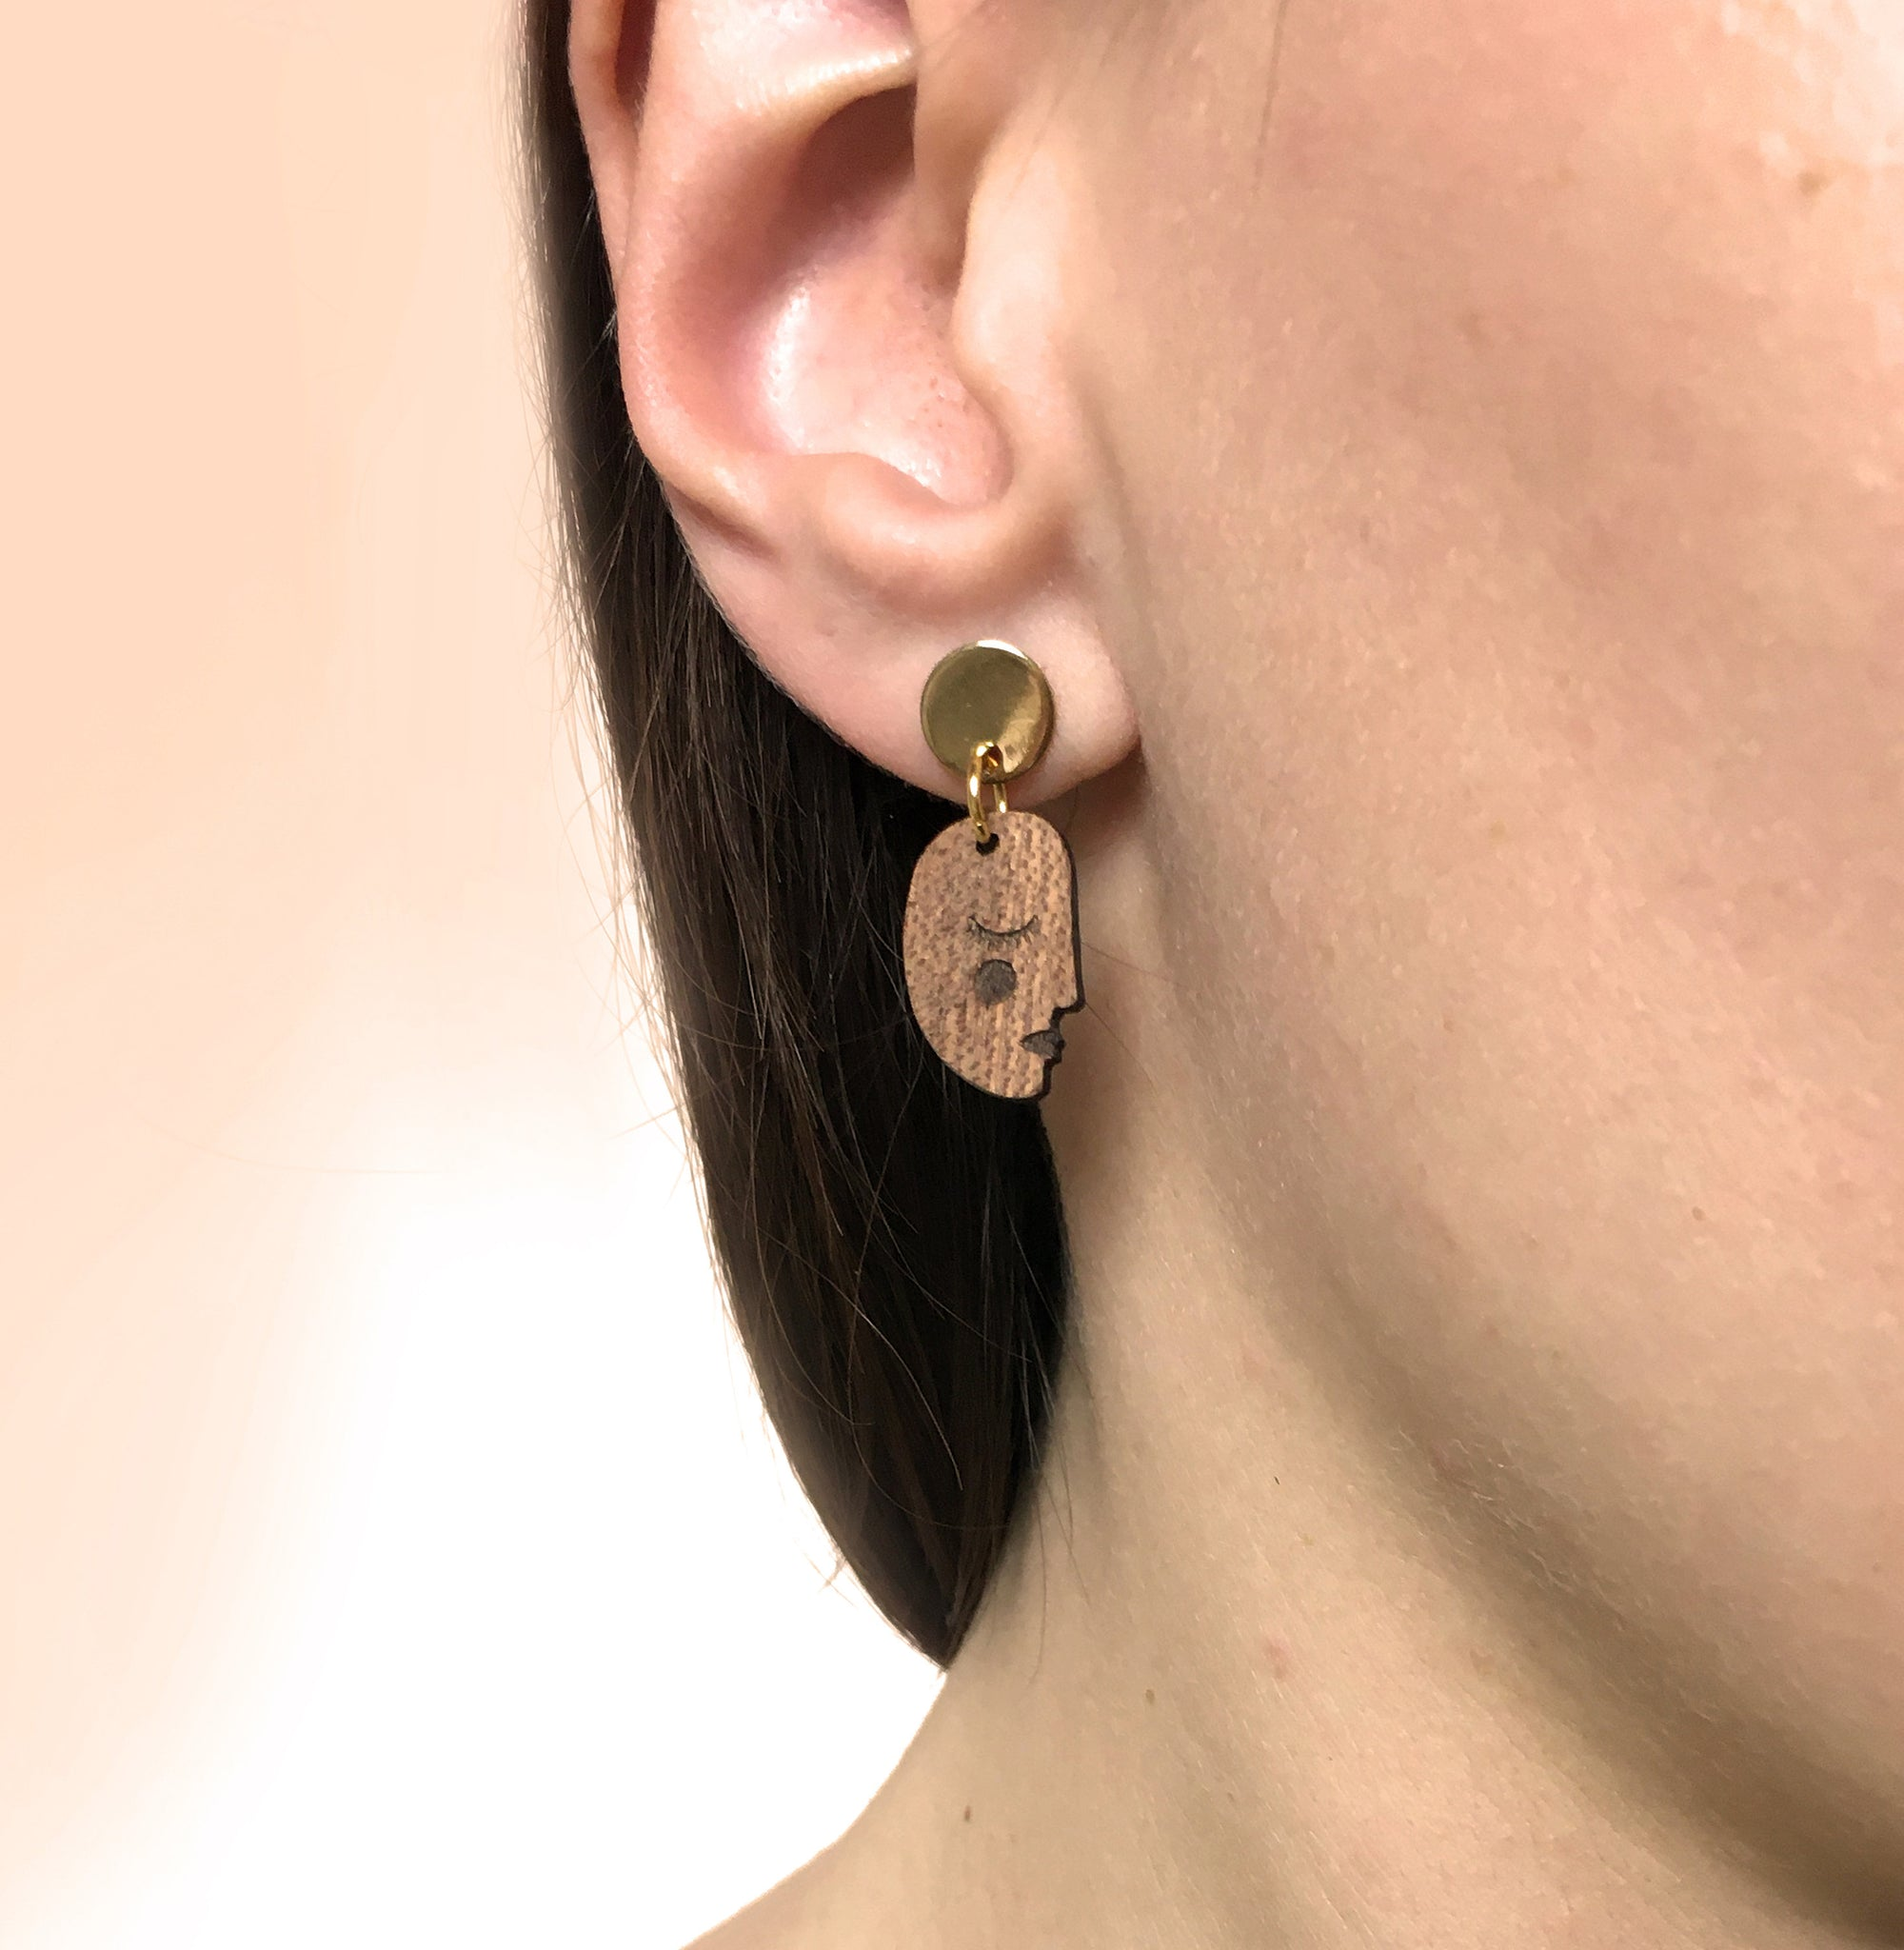 Face Earrings - natural colour